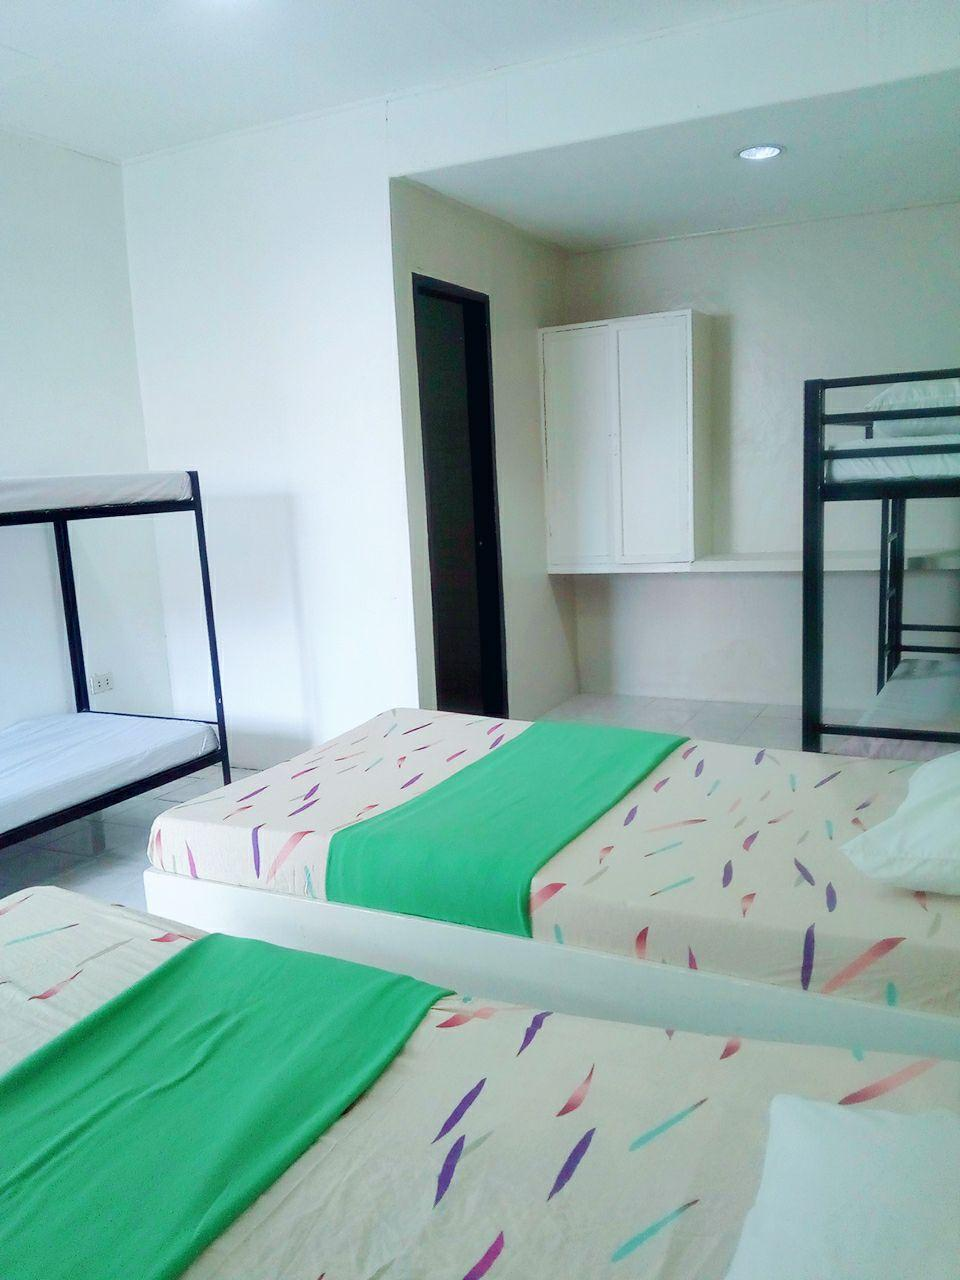 1 Person in 8-Bed Dormitory - Mixed